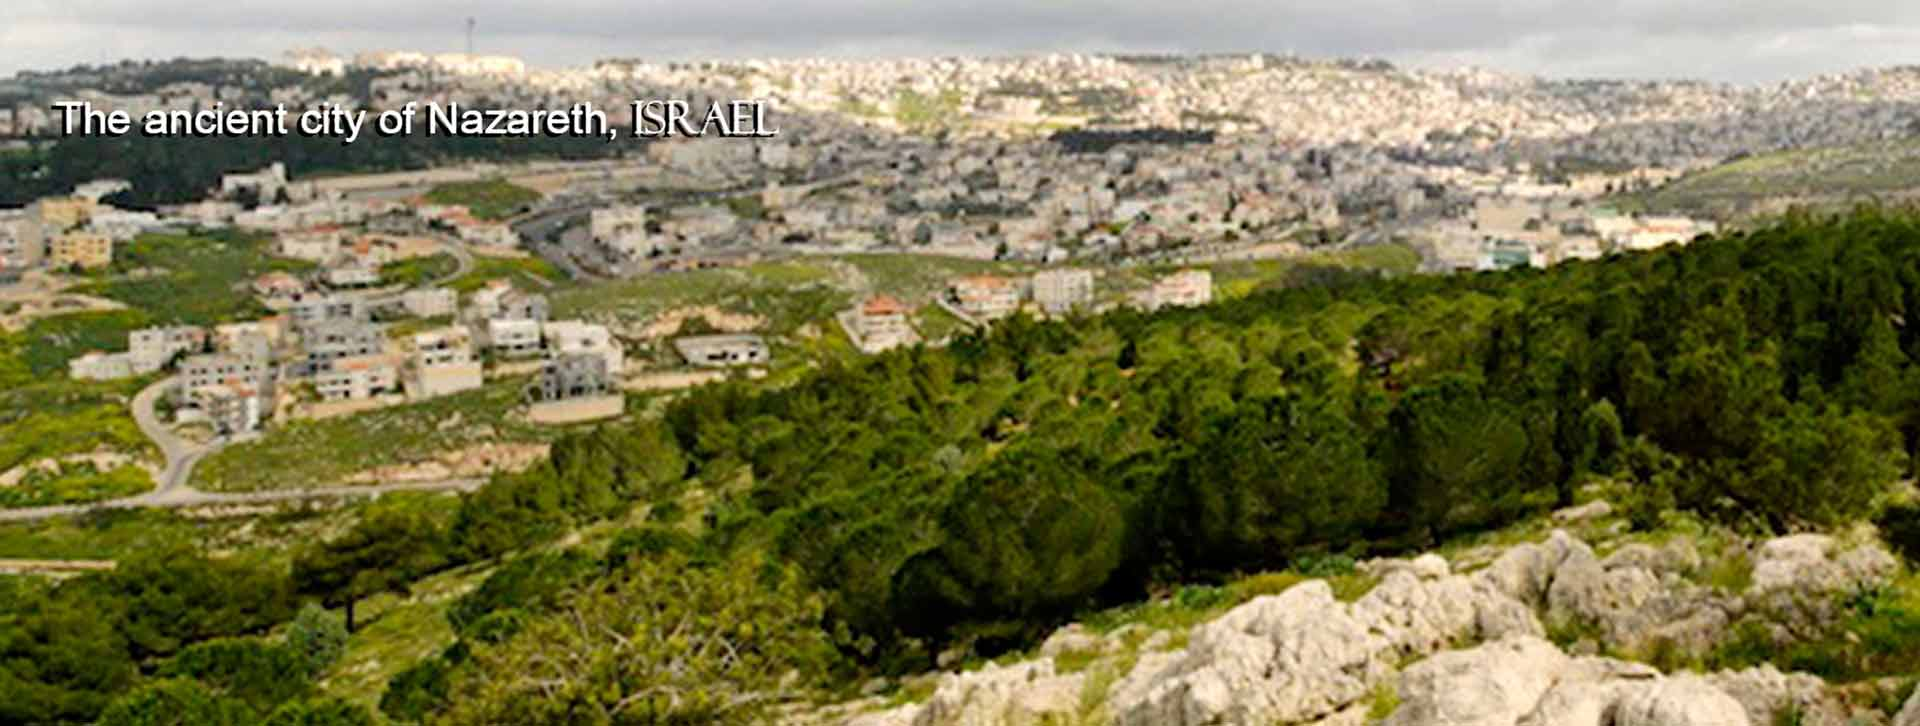 The ancient City of Nazareth